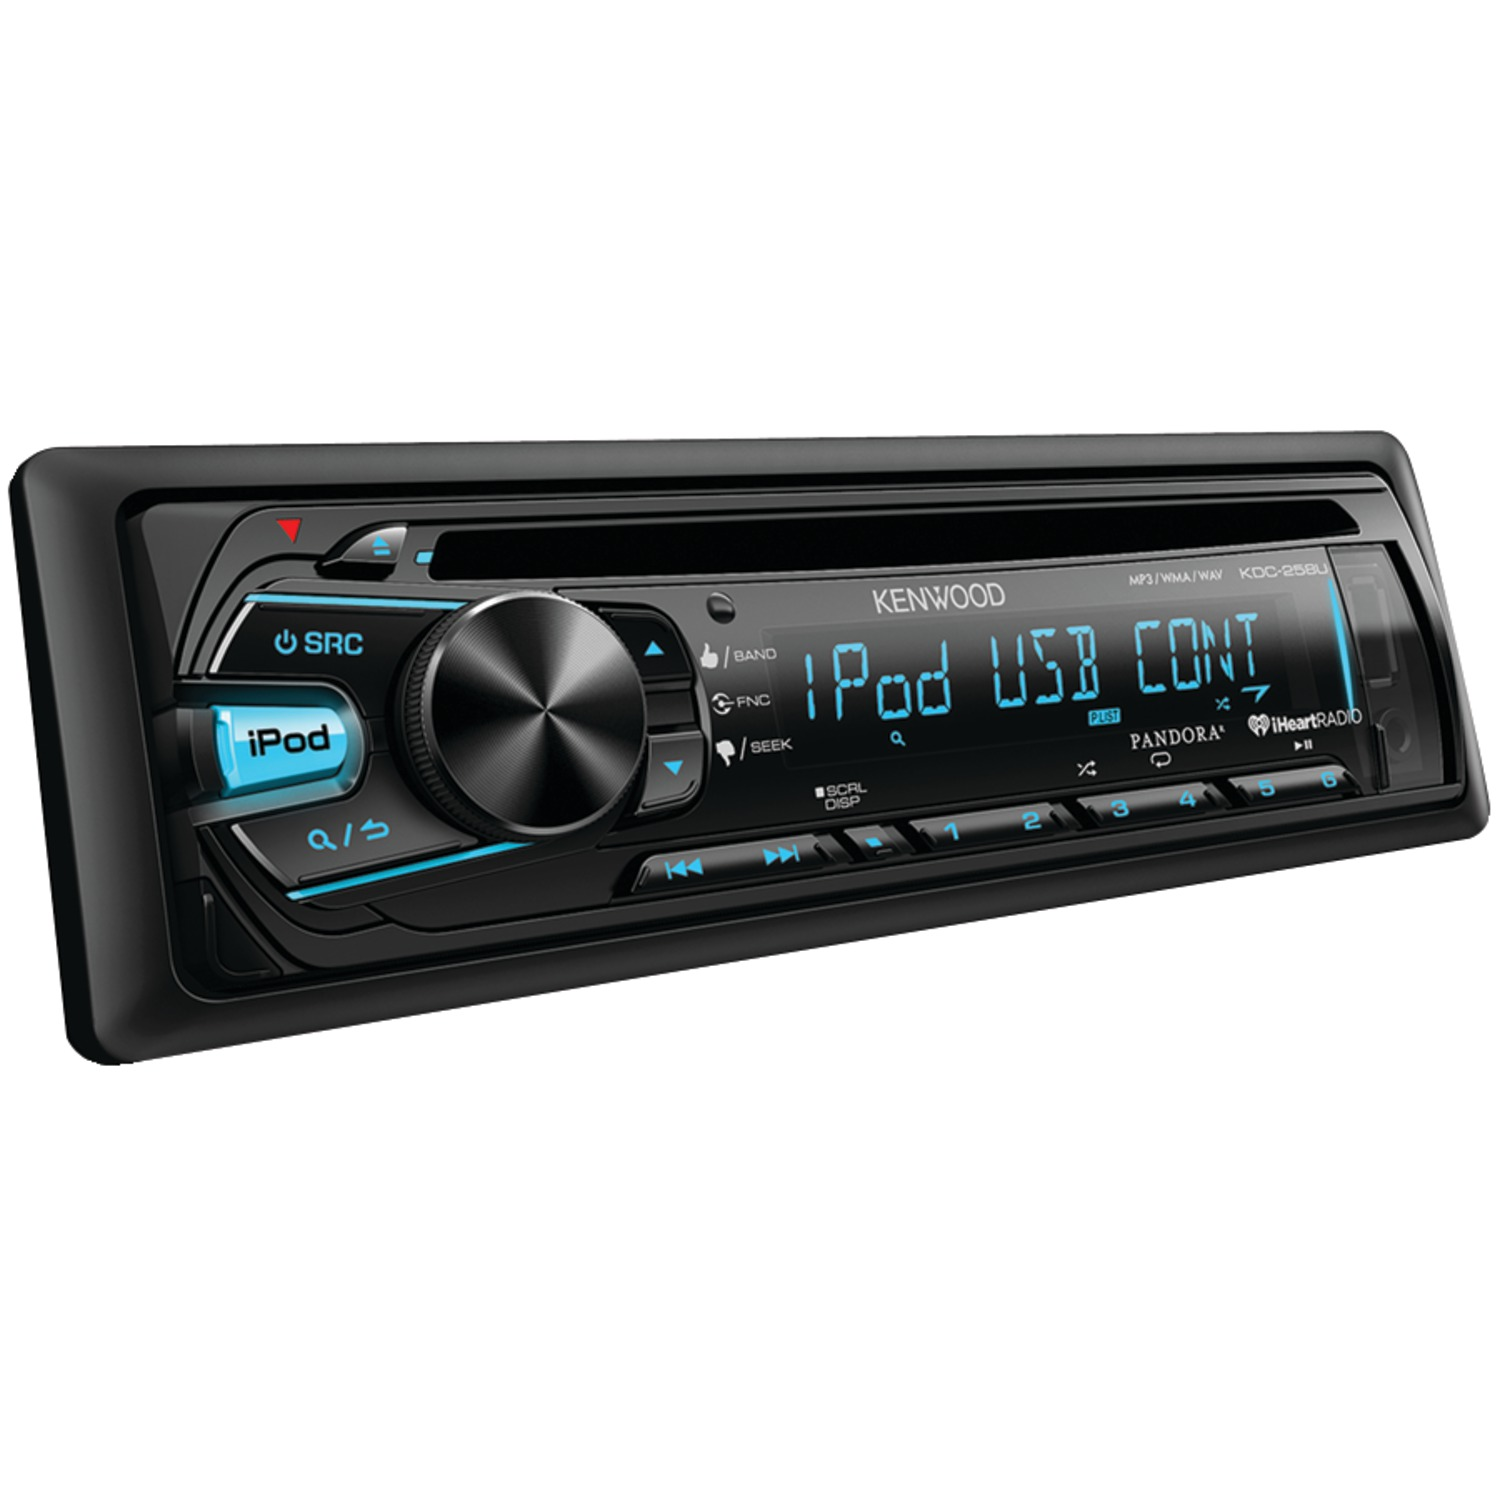 485ad0f2 a952 46d0 a56a bf20cf8890f6_1.61aaf78fda9a1750f648ee09cd1e19b3 kenwood kdc 258u single din in dash mp3 cd receiver with variable kenwood kdc-258u wiring harness at n-0.co